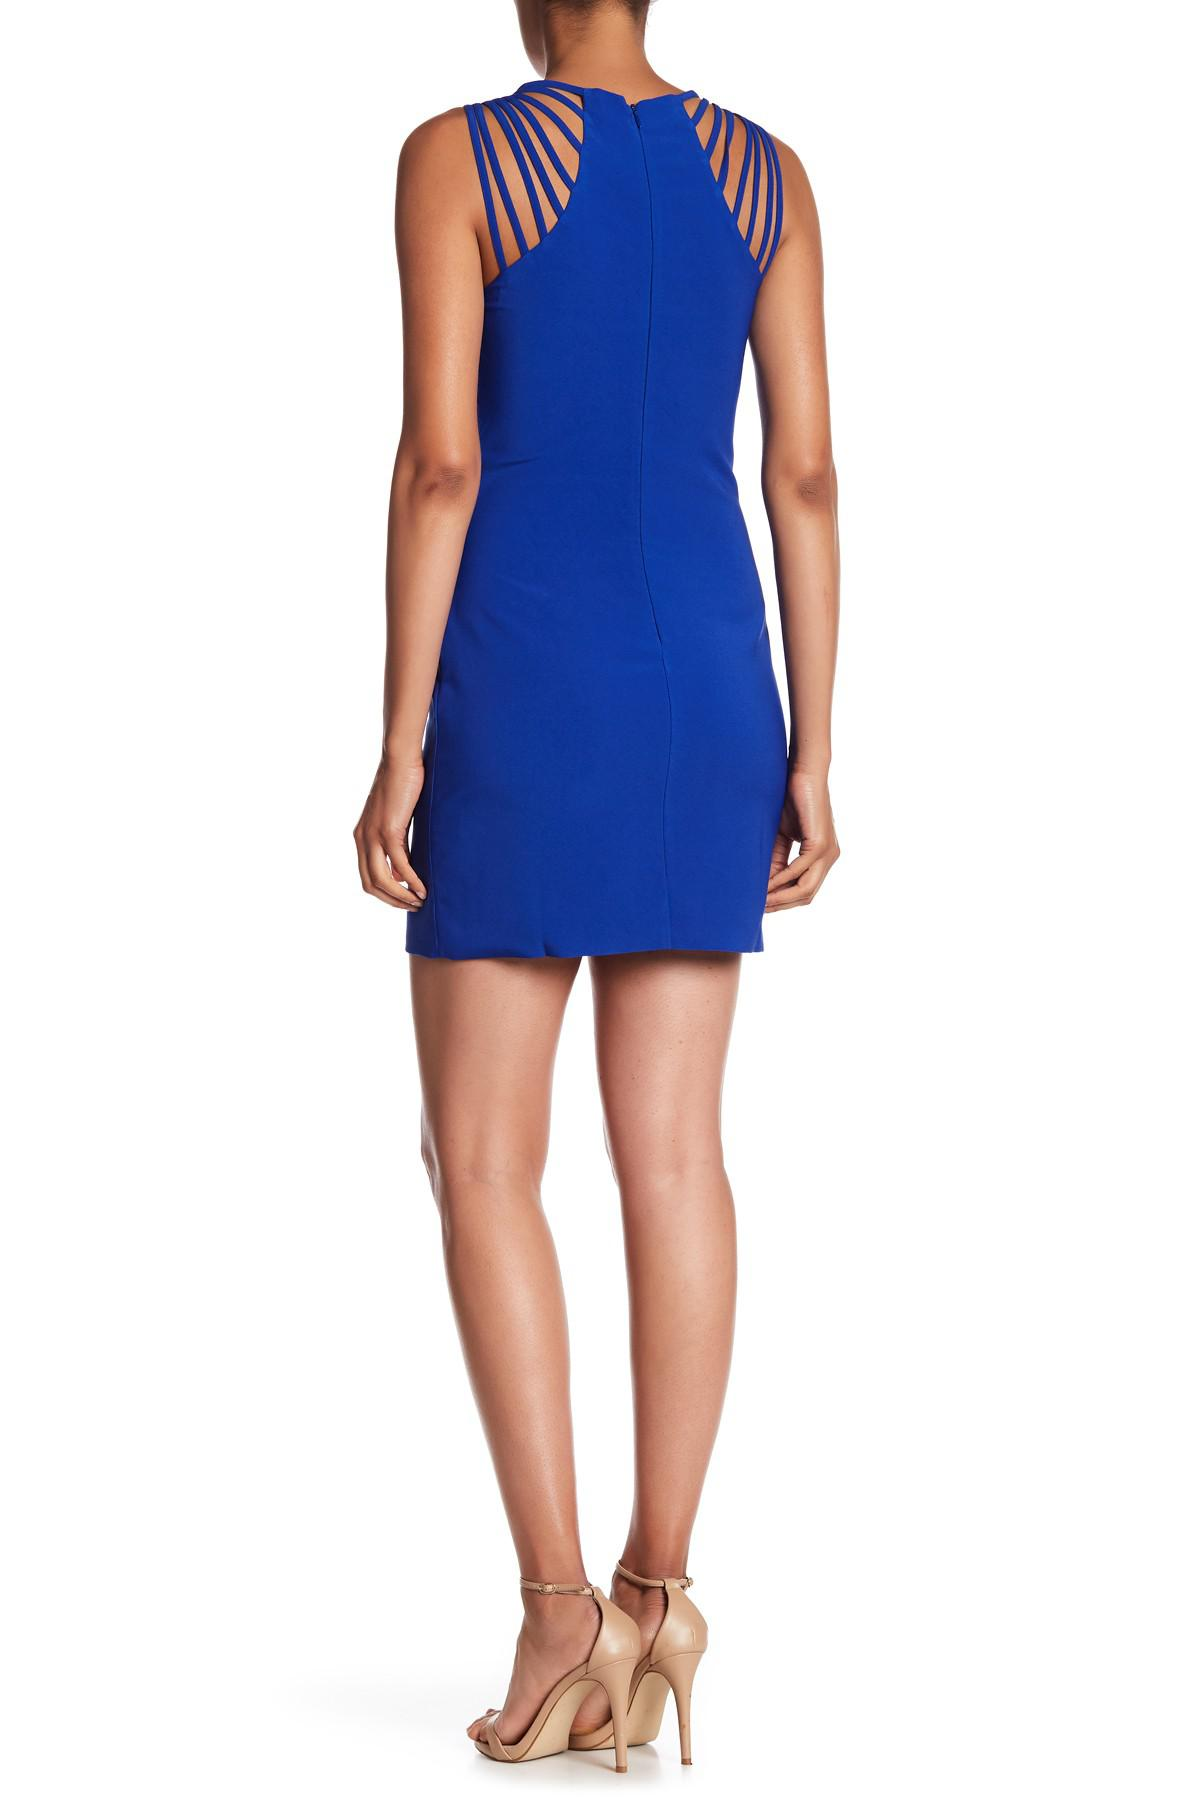 9d857ae2 Gallery. Previously sold at: Nordstrom Rack · Women's Blue Dresses Women's  Sheath ...